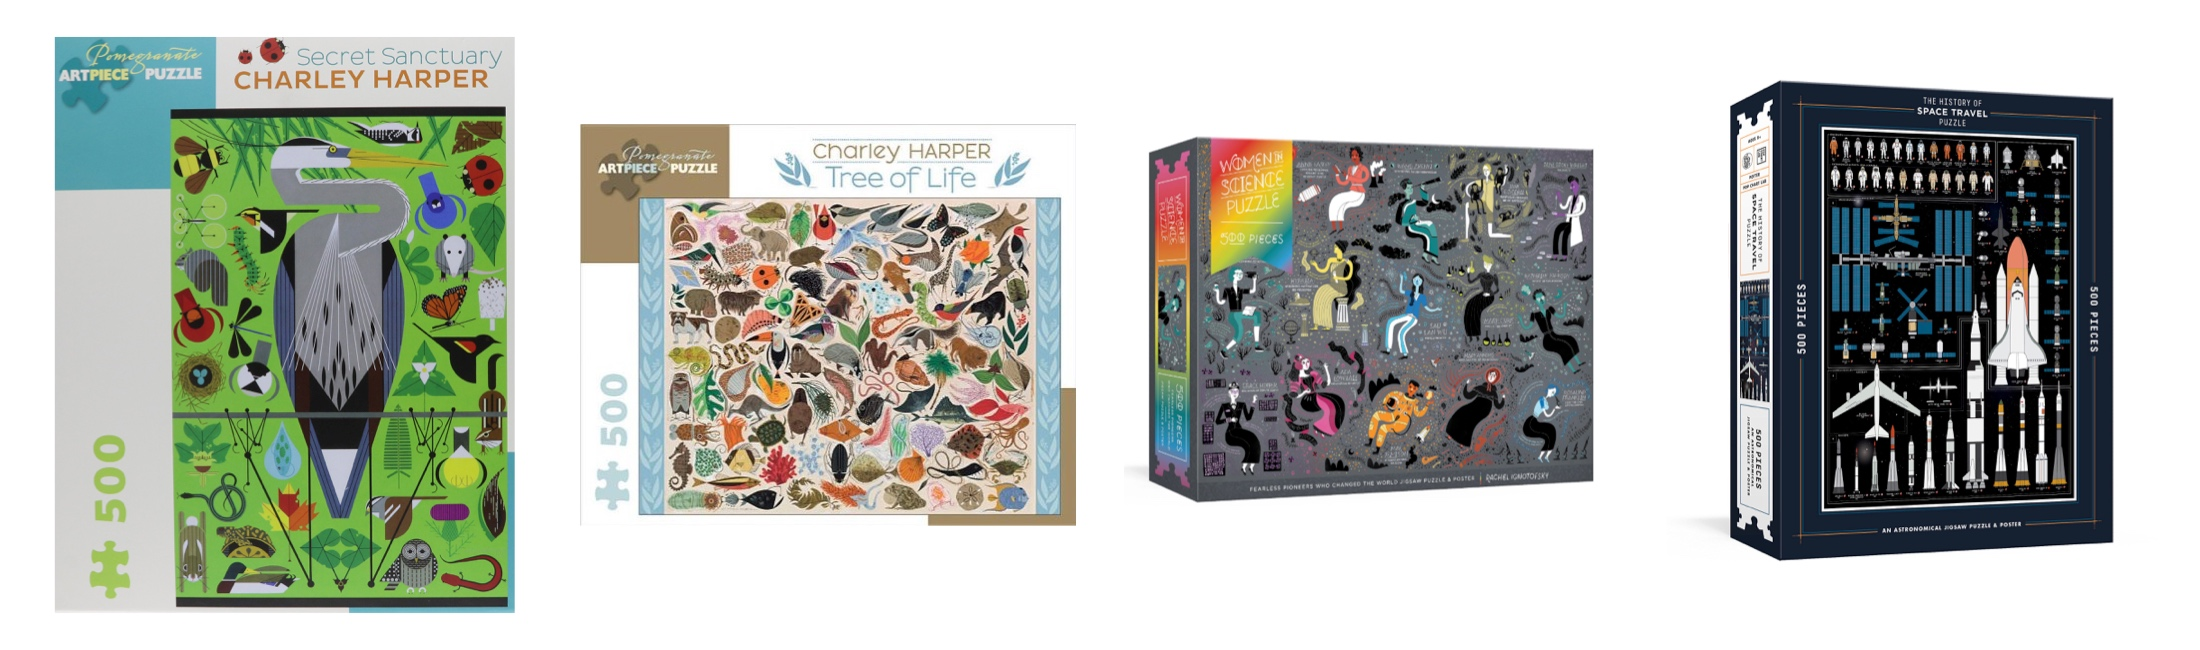 Puzzles are a great family friendly activity when you & the kids (or hubs) just want to chill. We like them to be pretty, too. I know, right? See our favs.